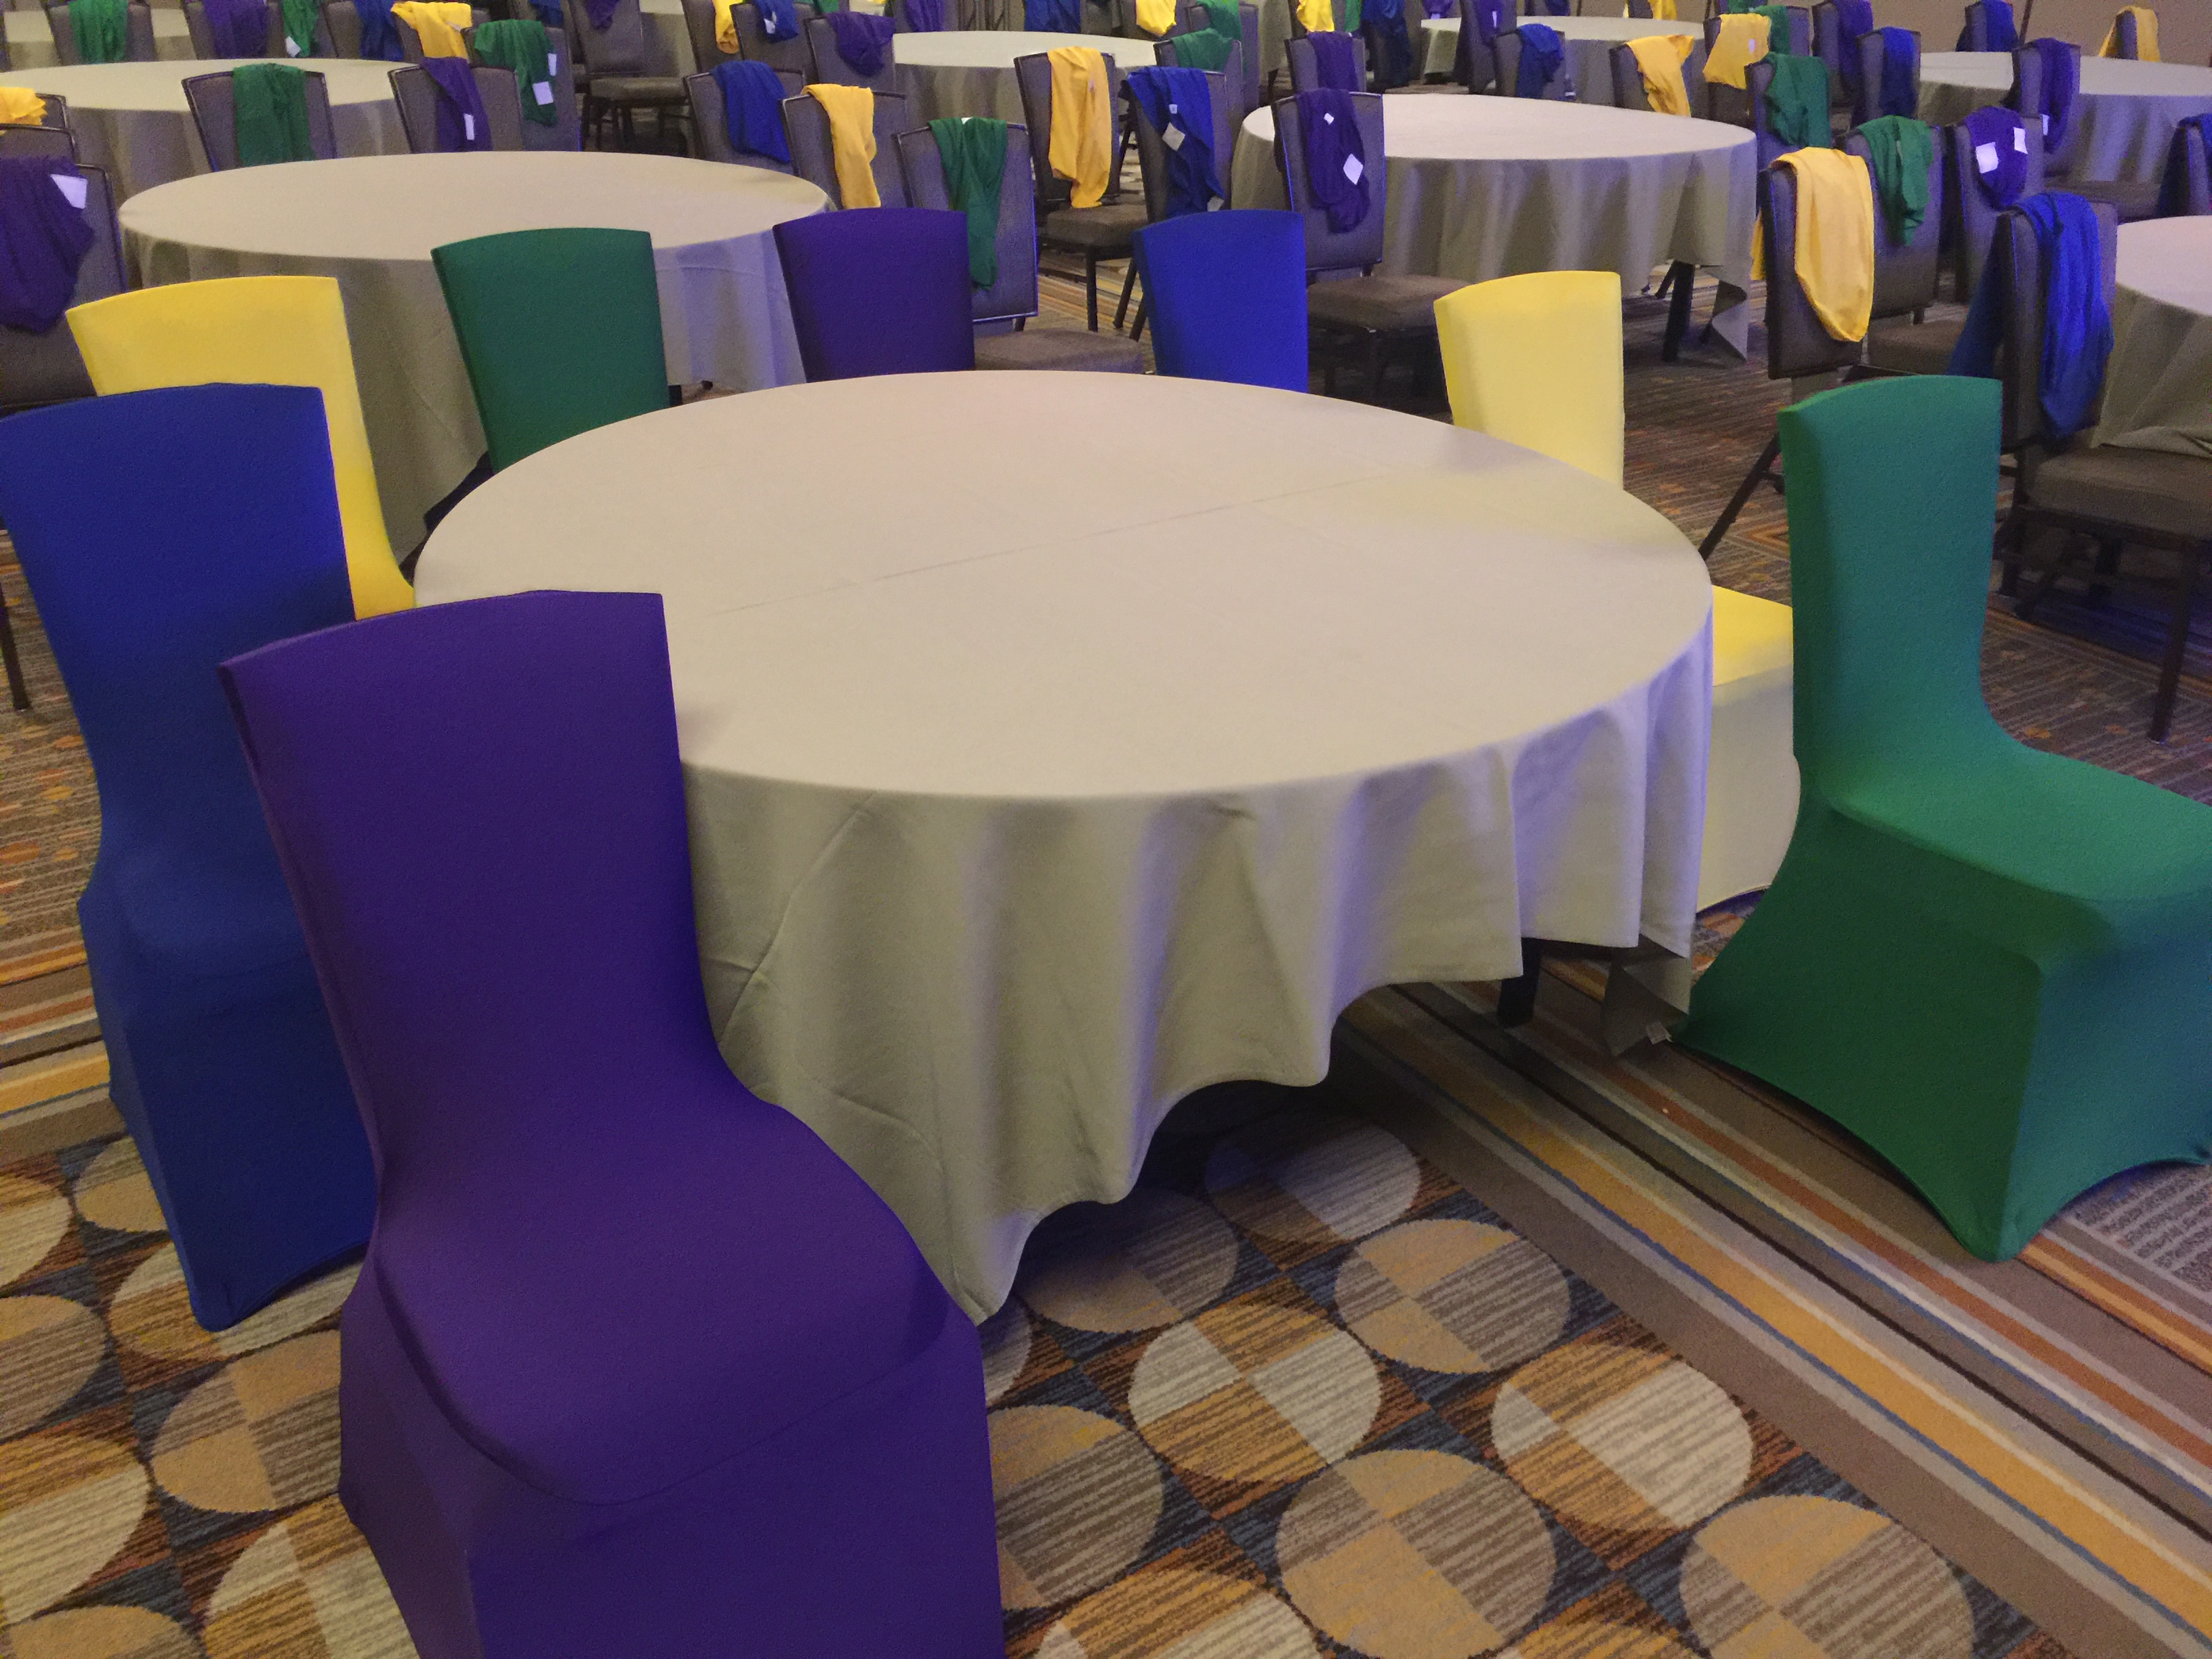 green banquet chair covers custom embroidered directors chairs emerald spandex dream captured event design